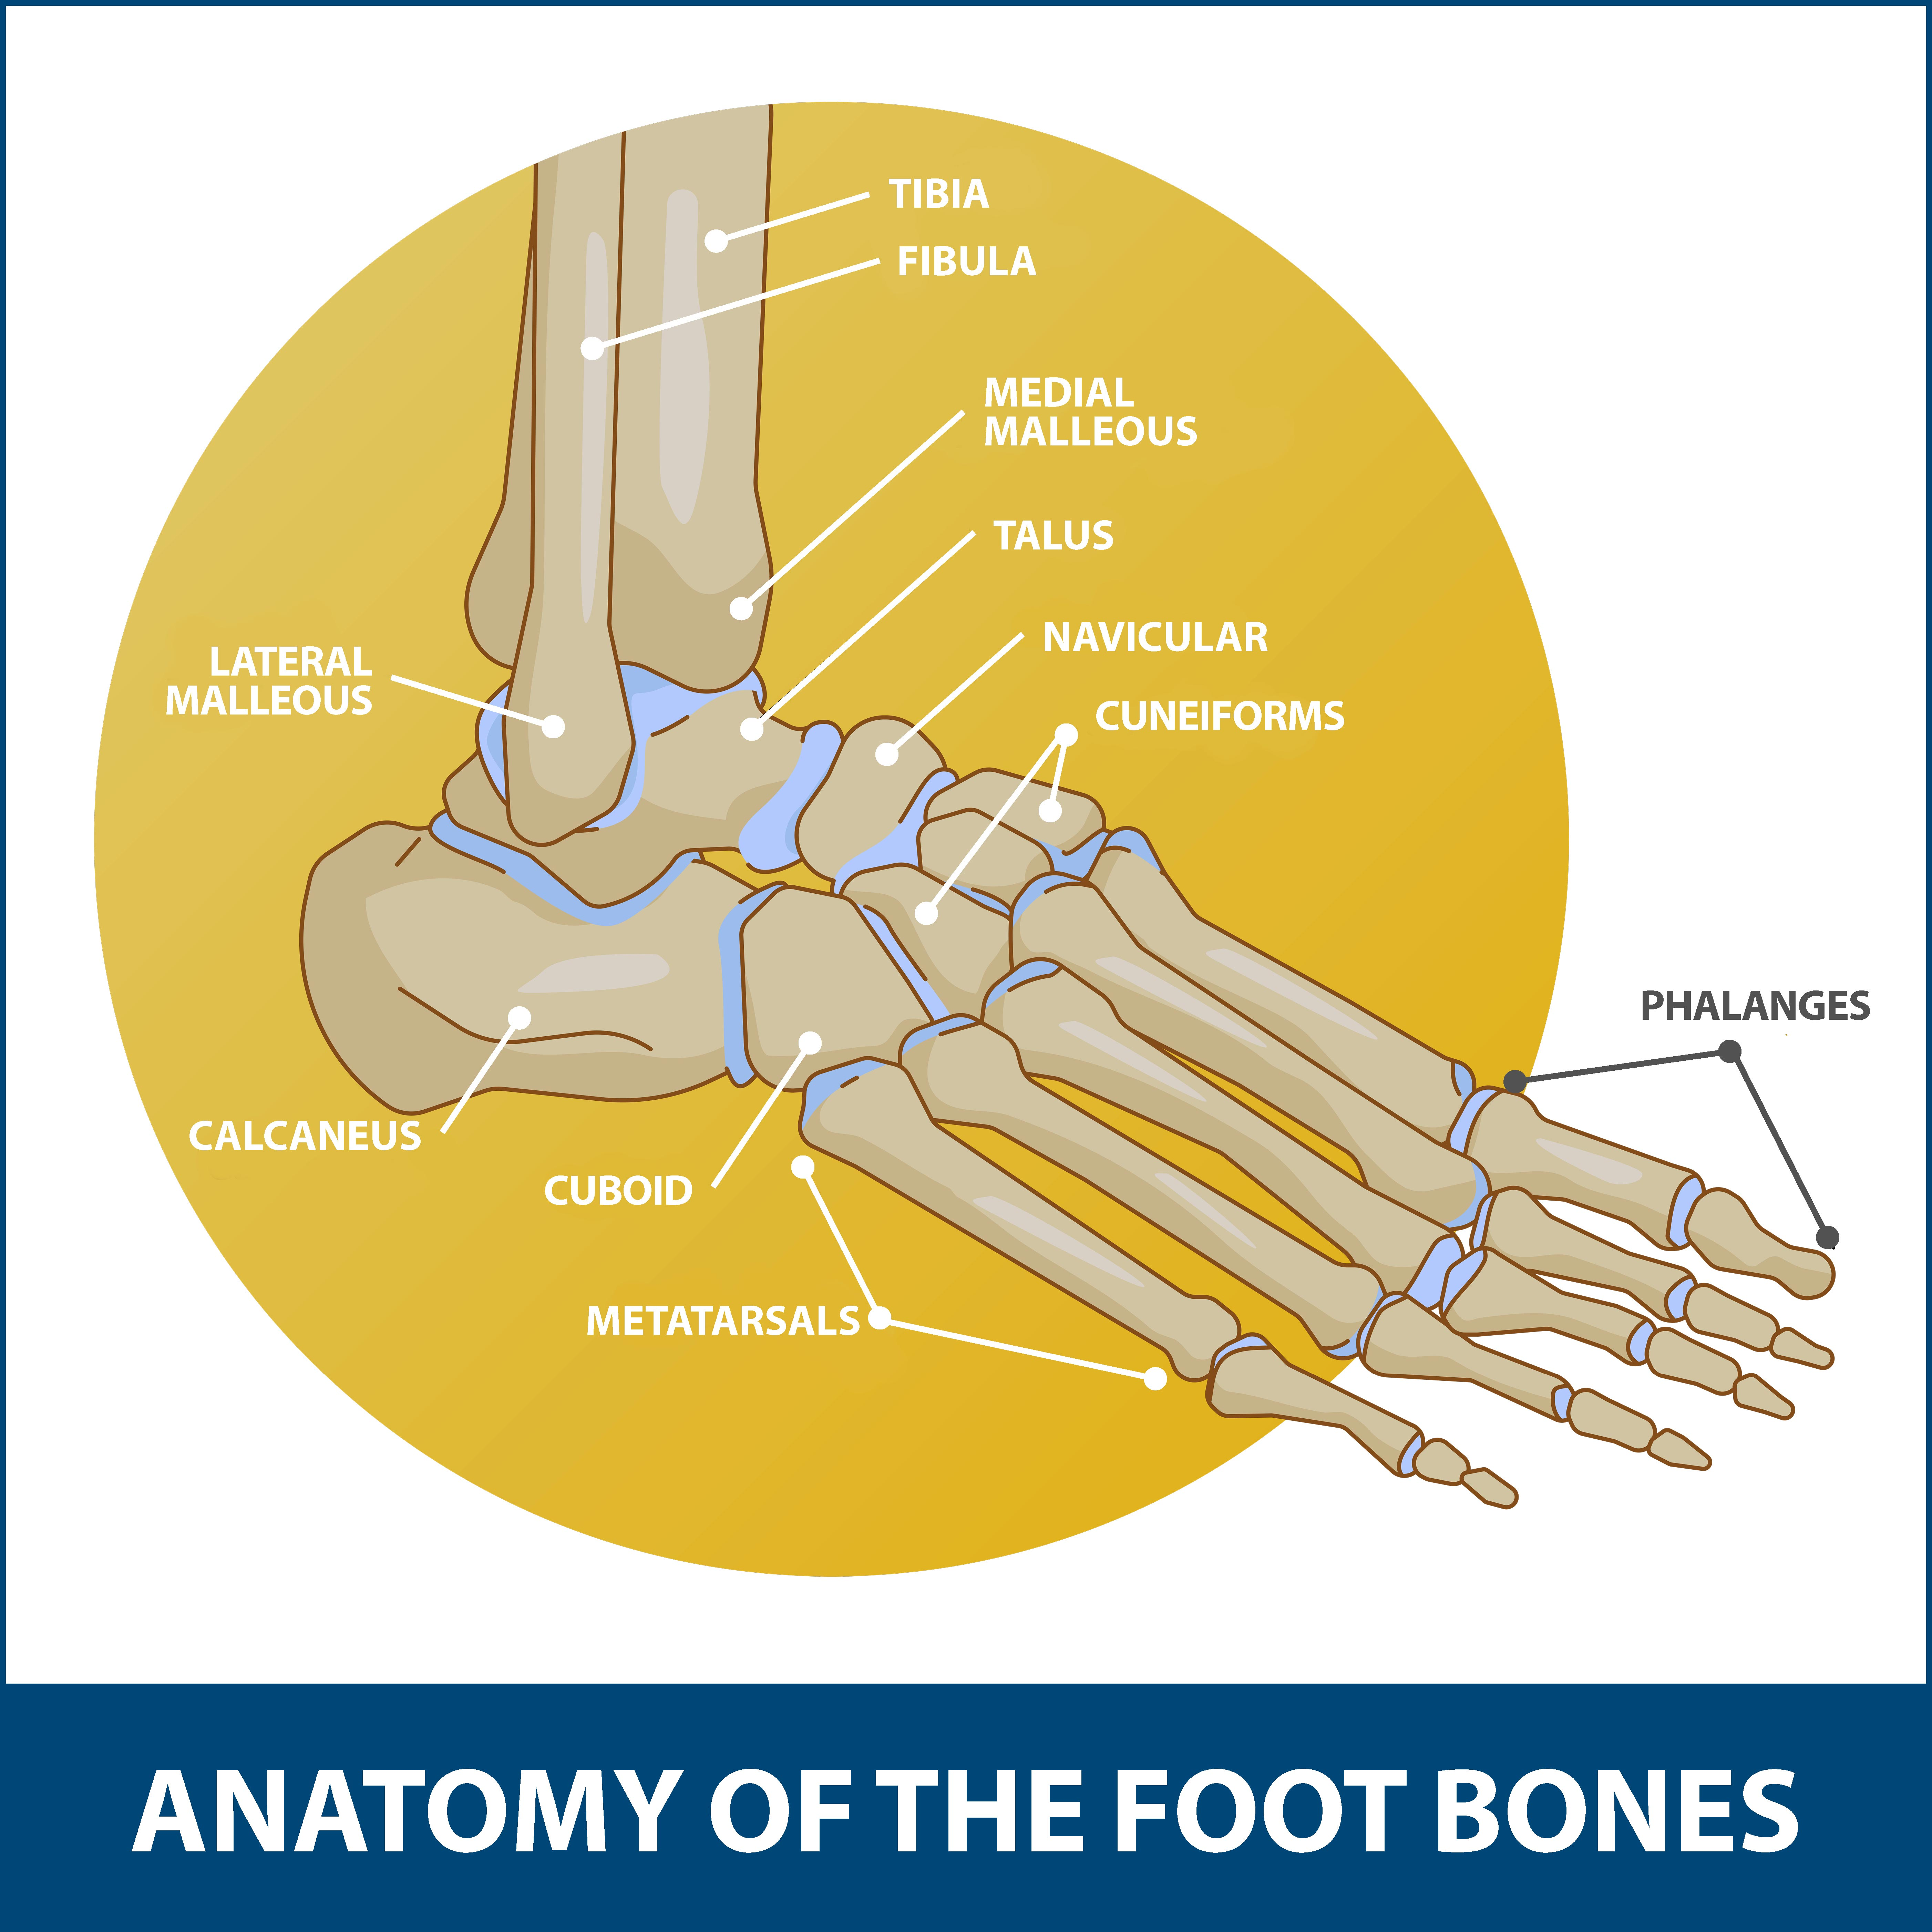 Intraarticular Calcaneal Fractures, Bones of the foot graphic